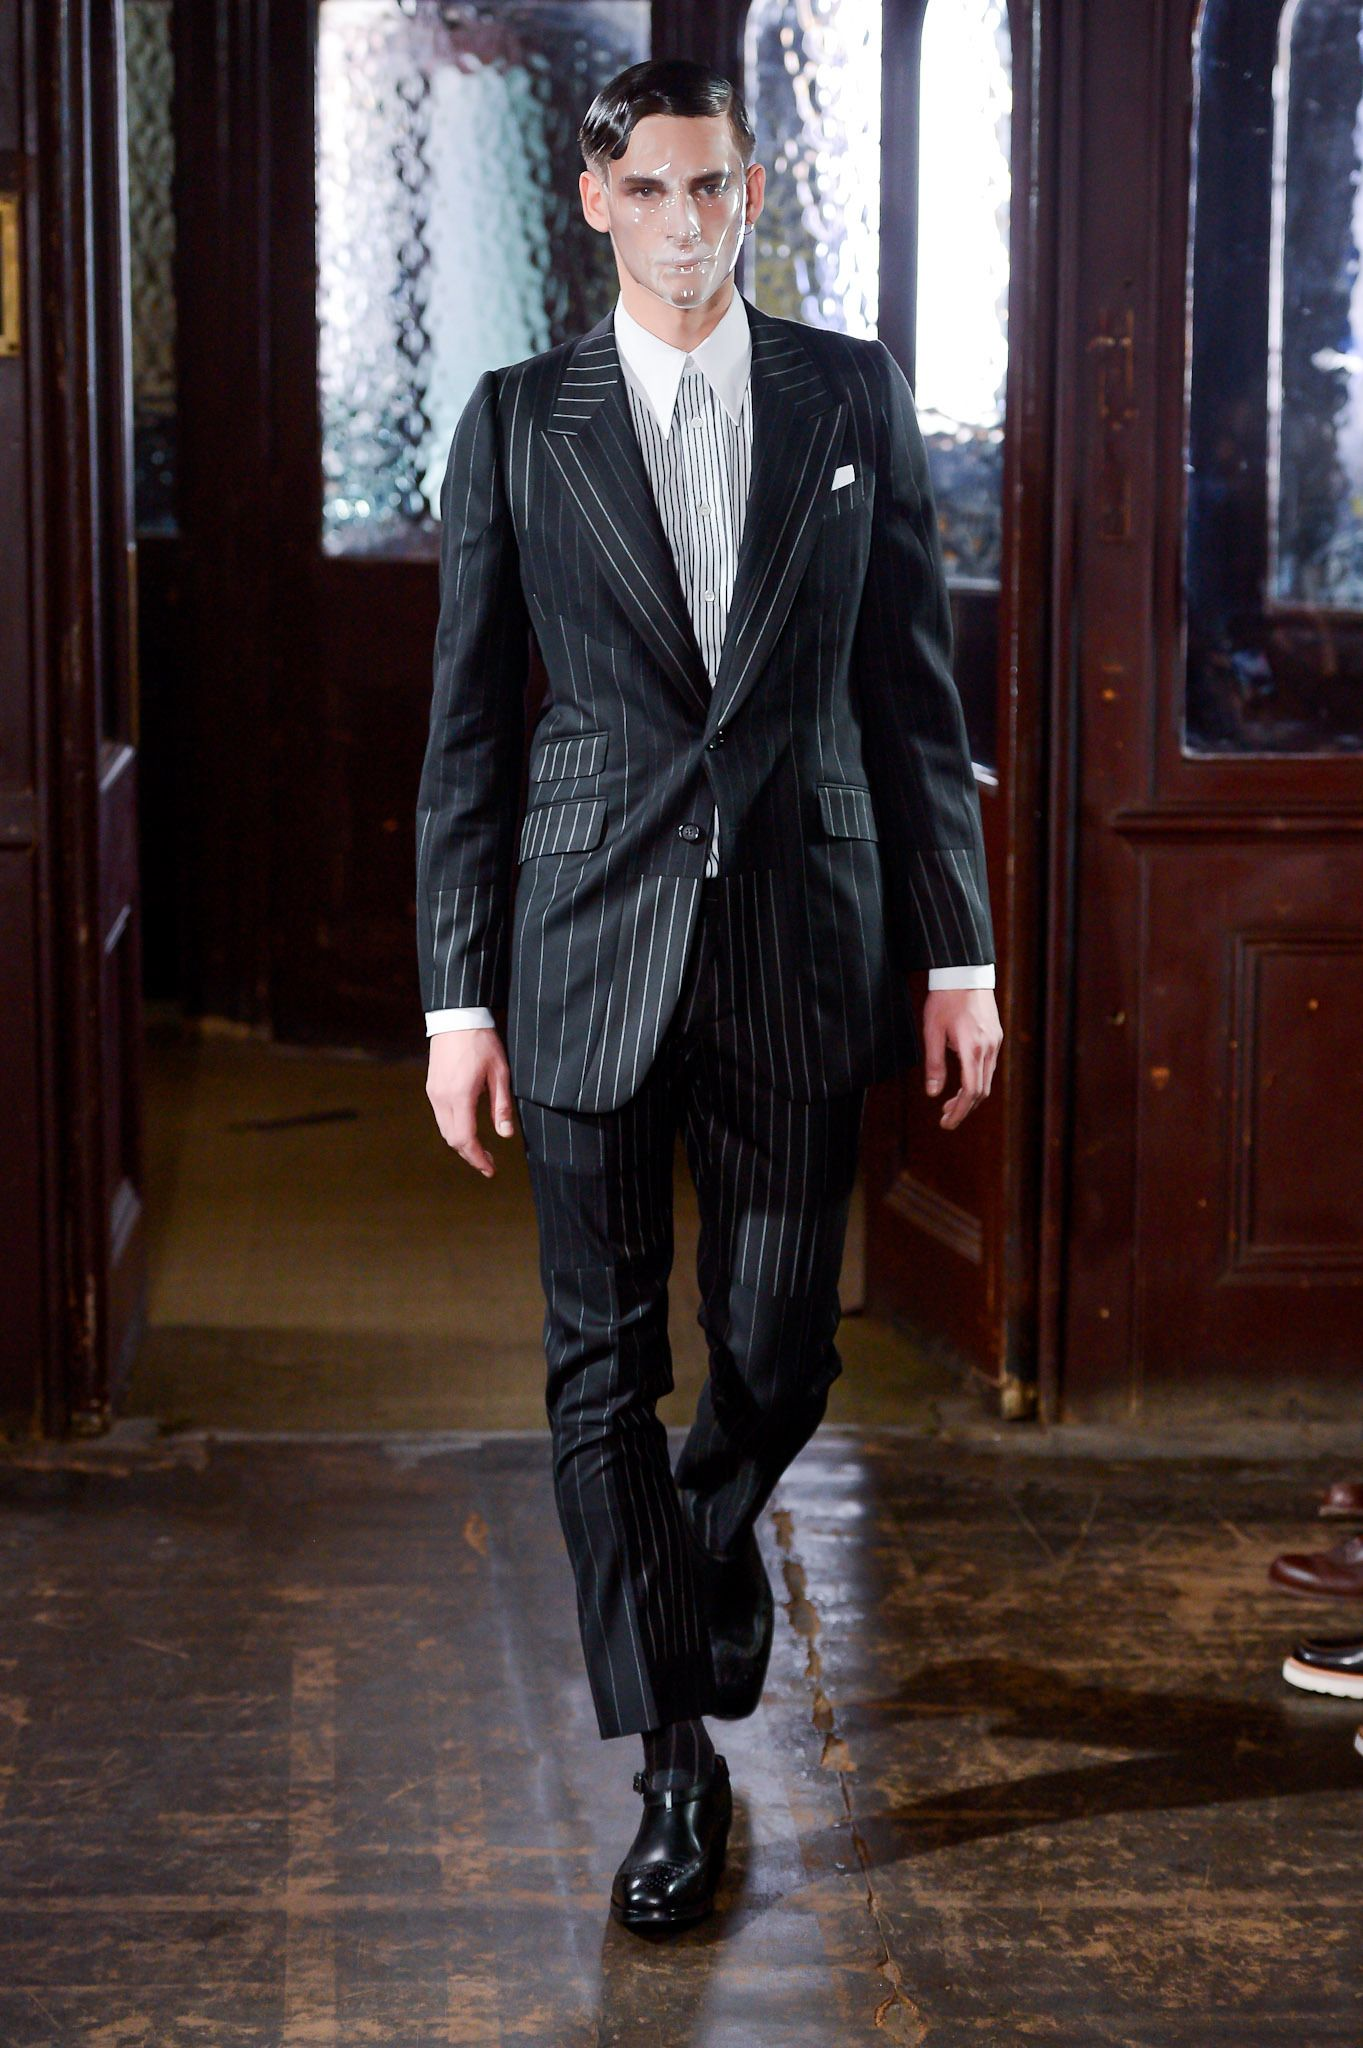 Alexander McQueen - Fall 2013 Menswear - Look 4 of 28